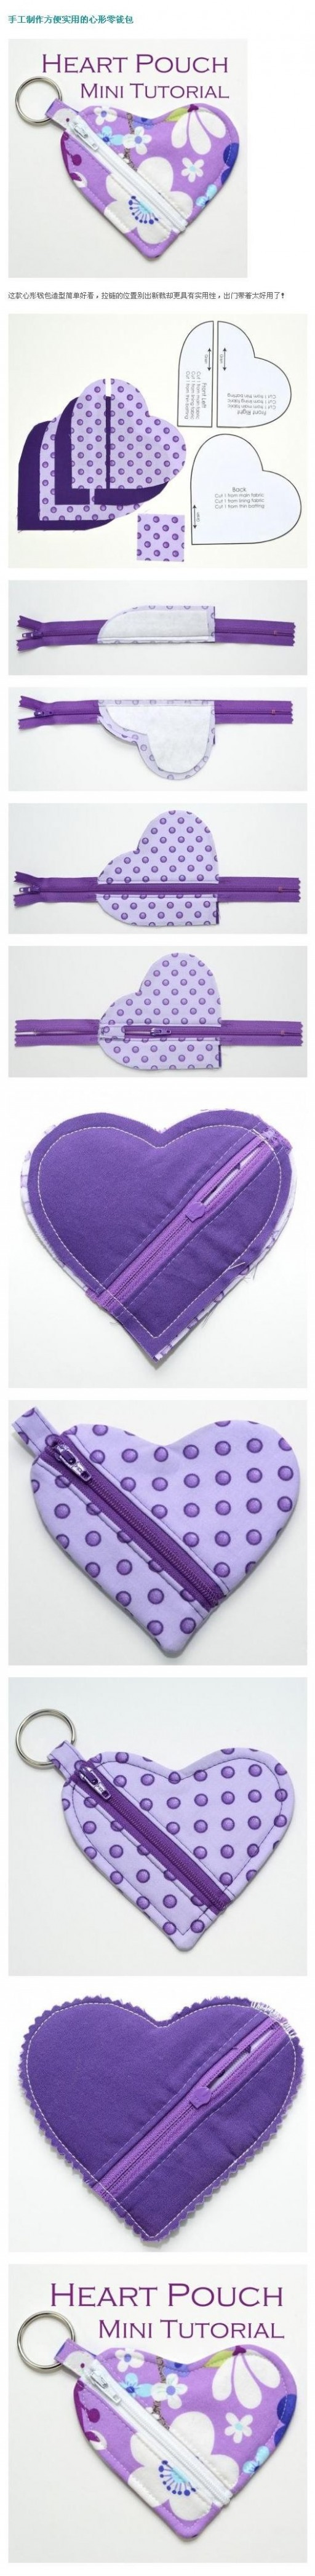 How to make pretty DIY heart-shaped pouch step by step tutorial instructions